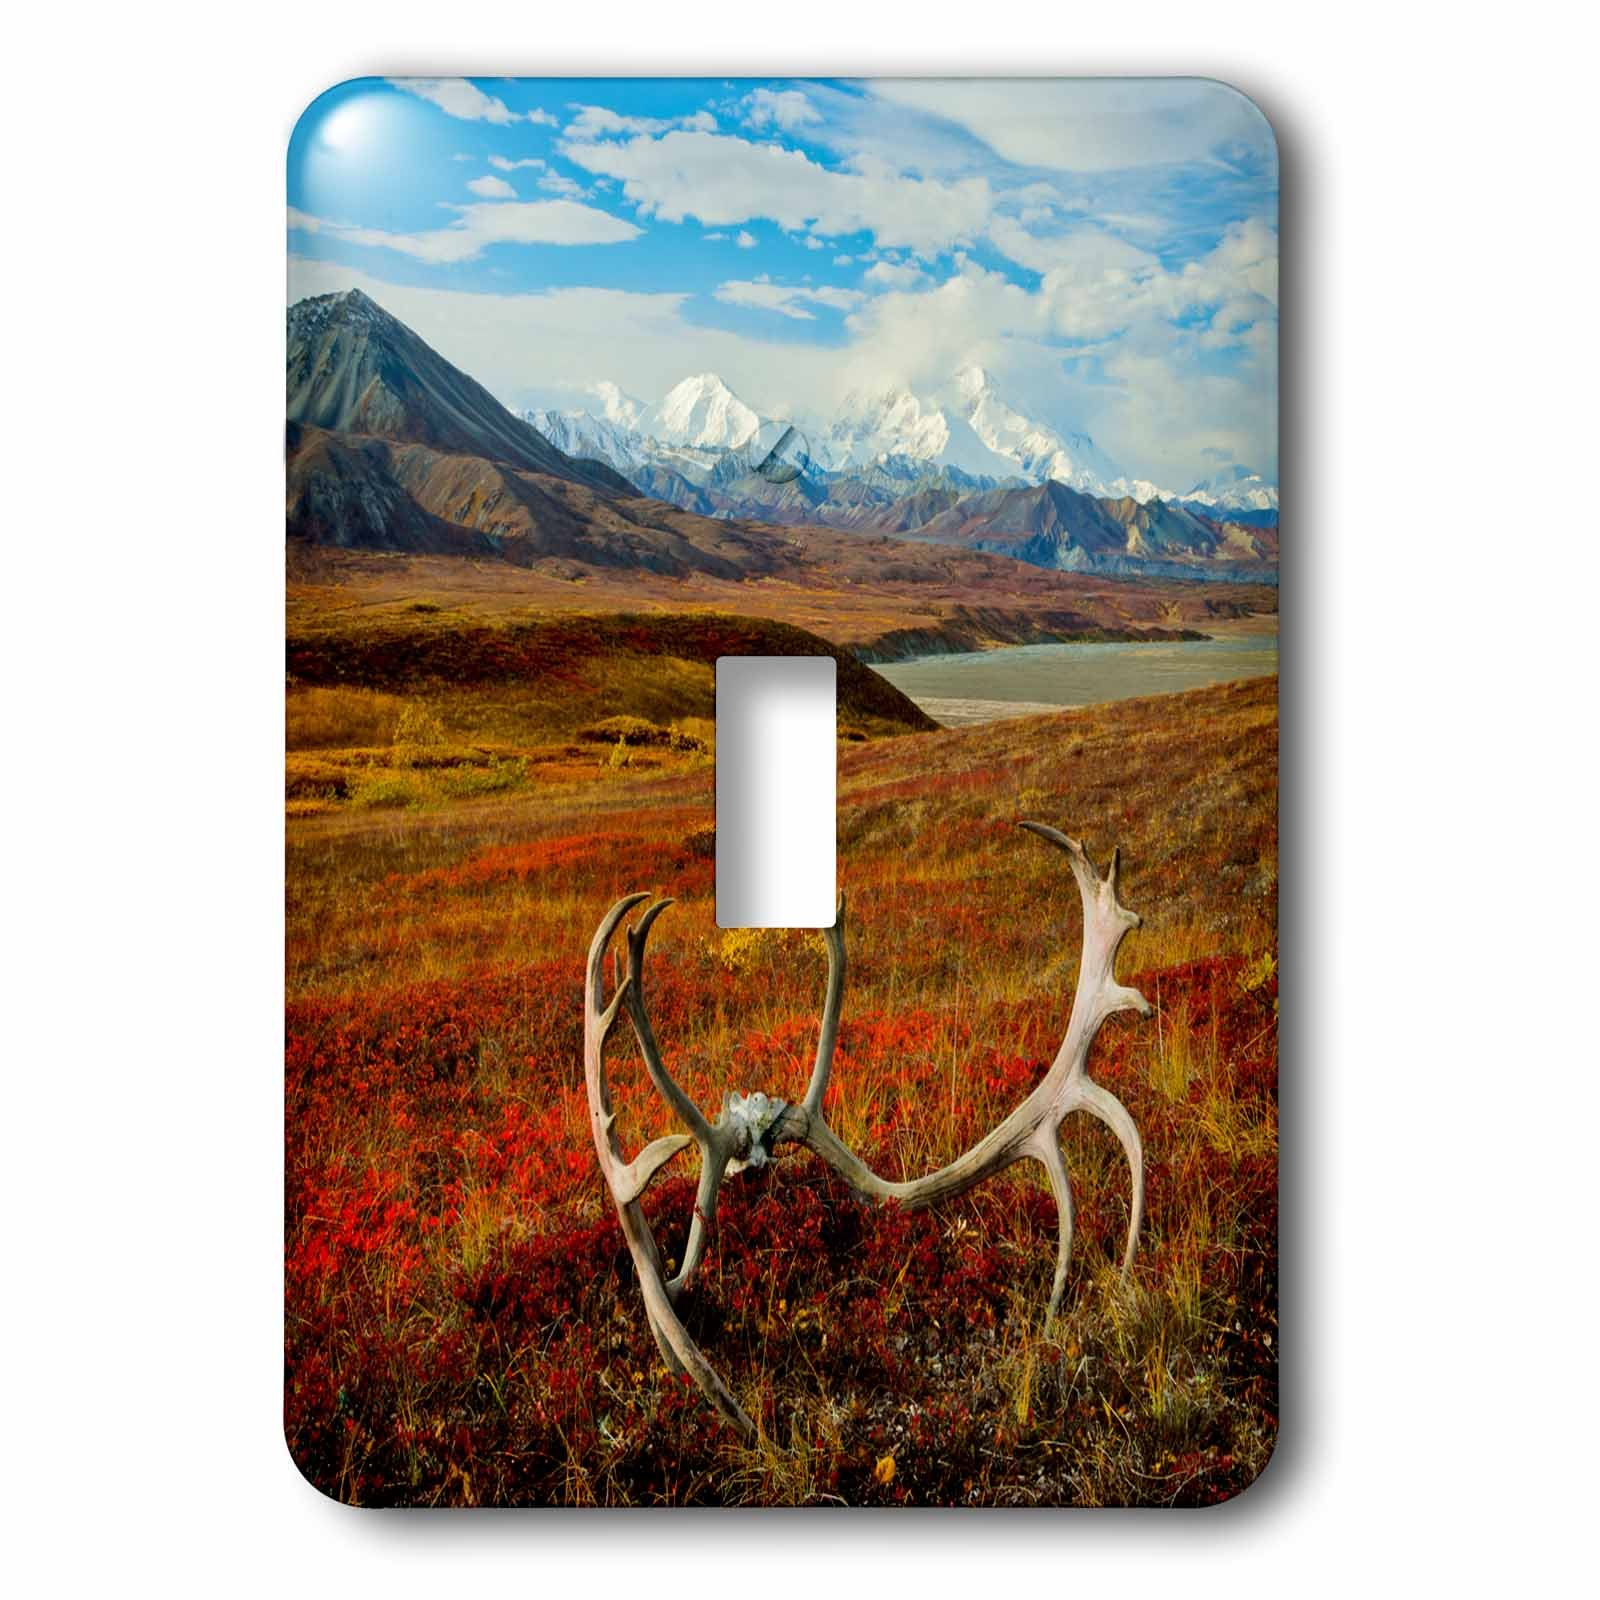 3dRose lsp_191066_1 Caribou Antlers on The Alaskan Tundra, Denali Np, Alaska, Usa Light Switch Cover by 3dRose